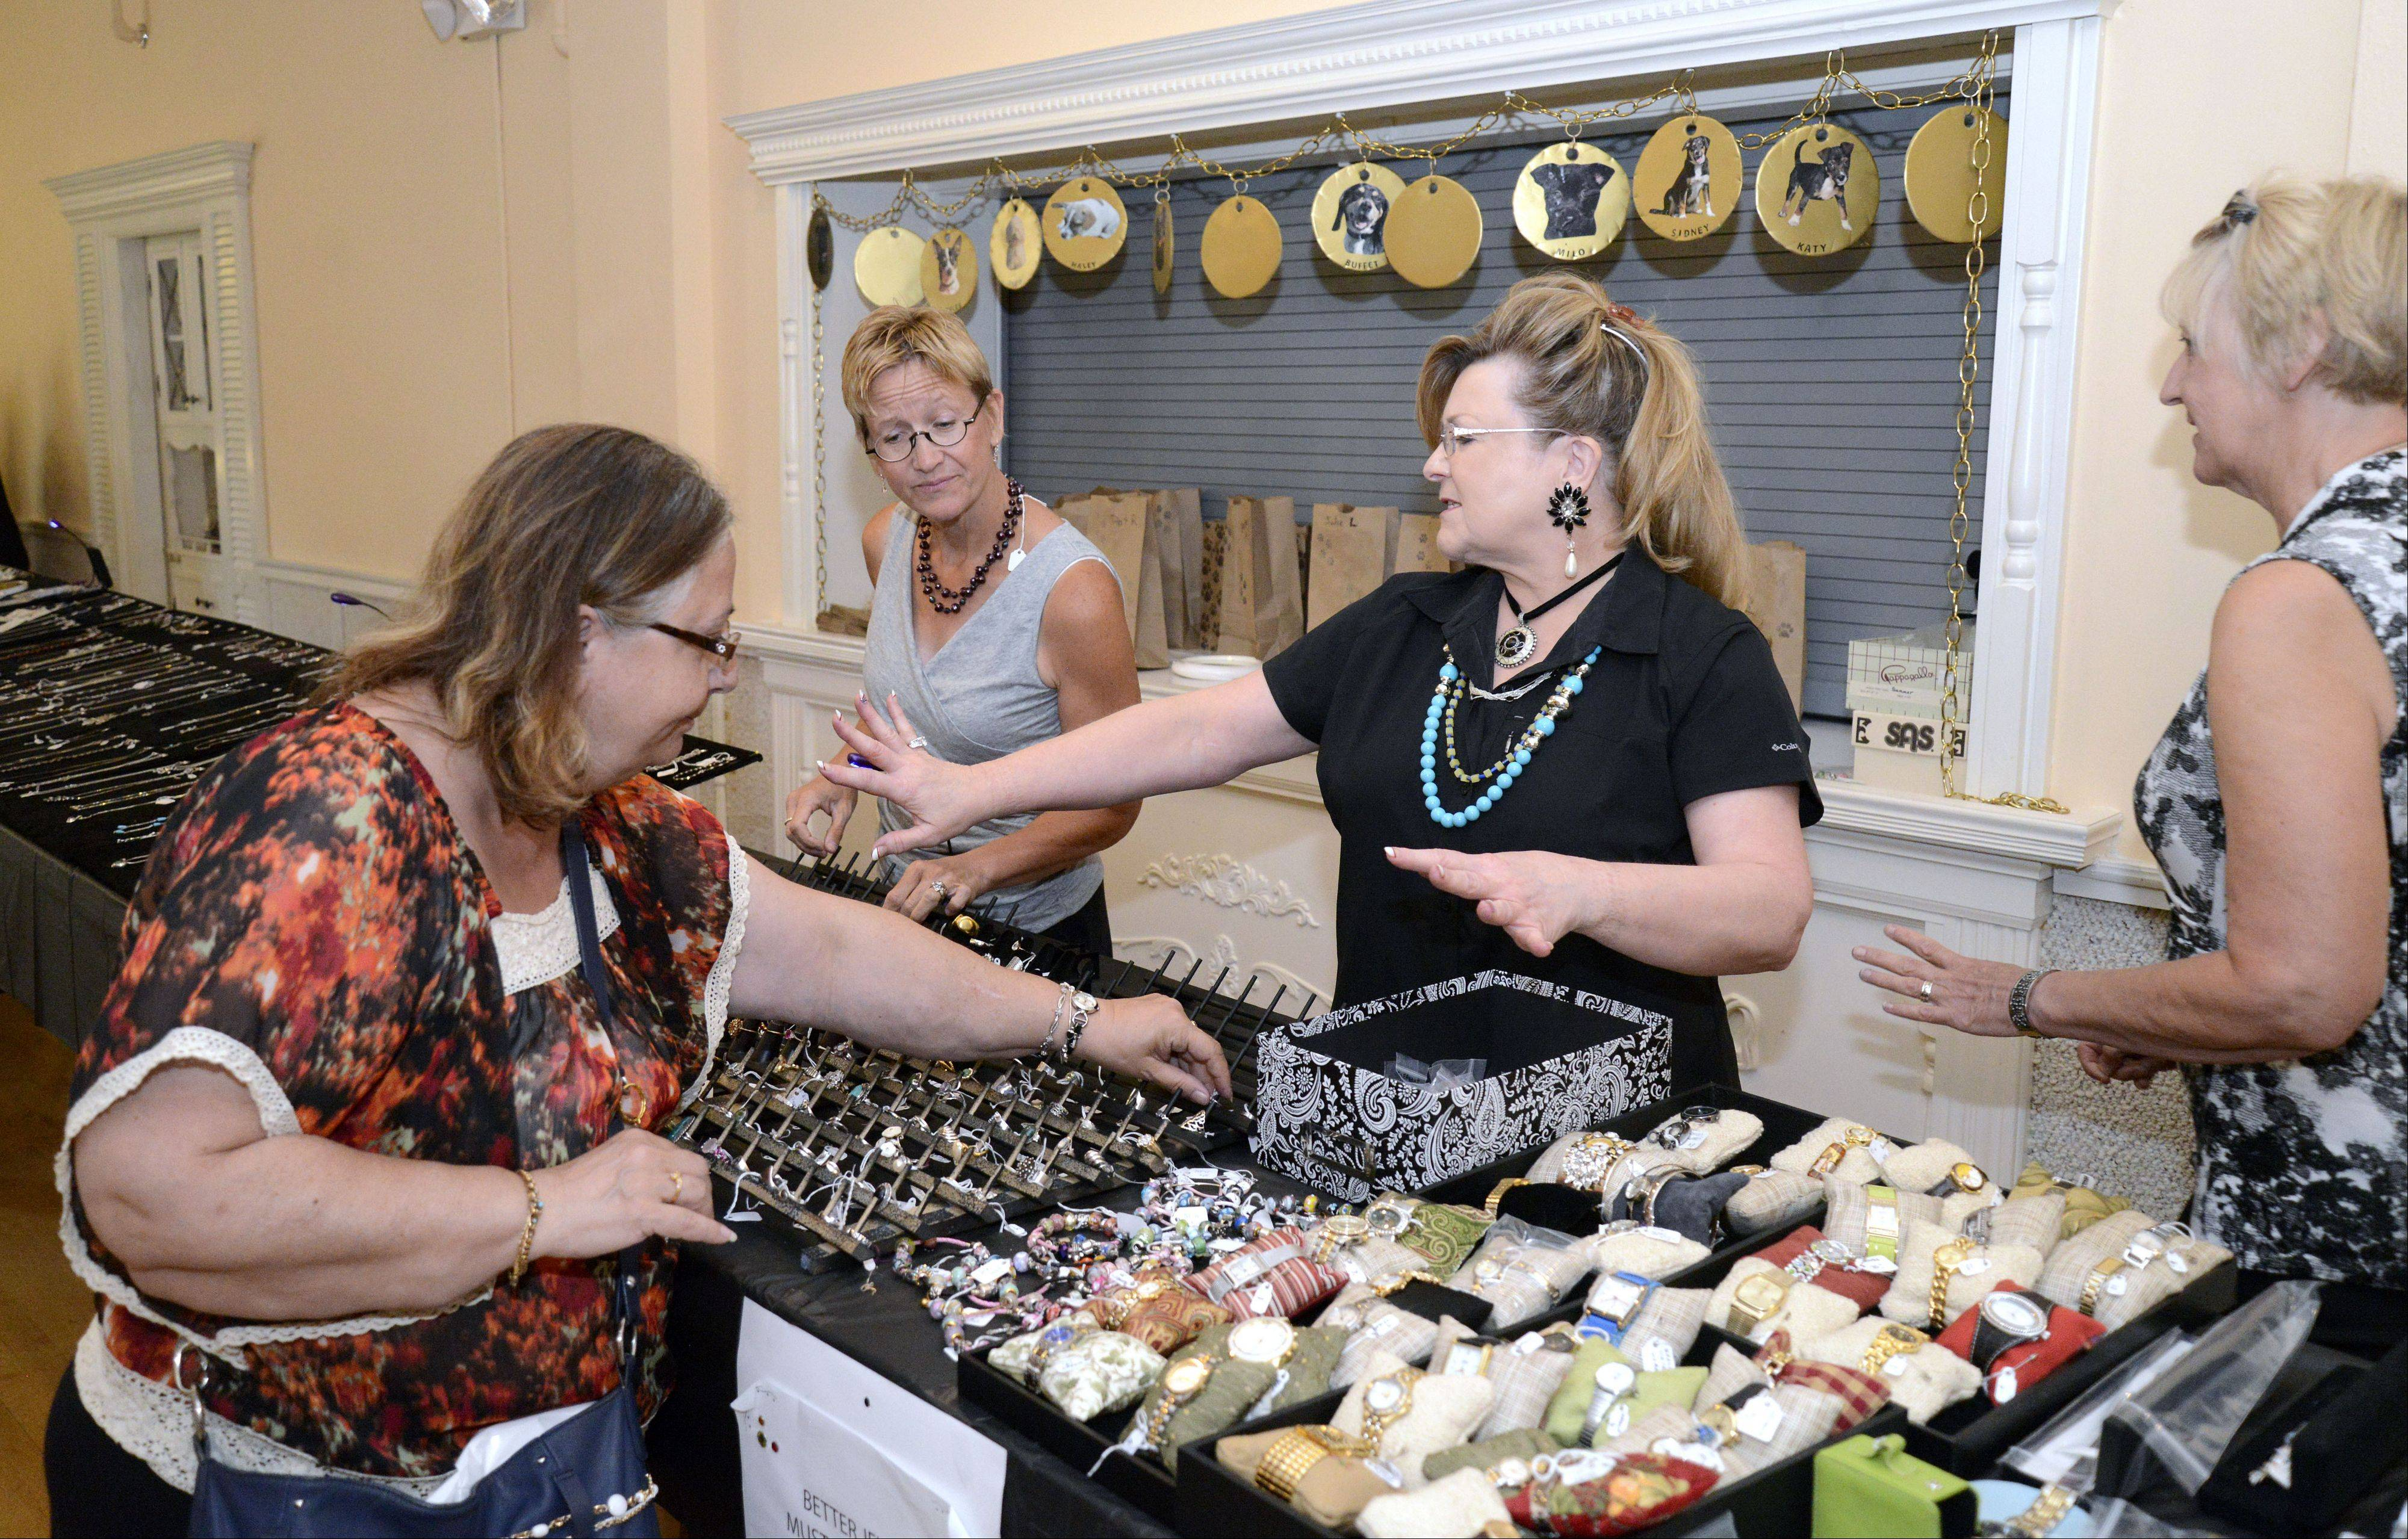 Linda Anderson of Bartlett, center, shows off a ring to fellow volunteer Beth Graham of Geneva and shopper Mary Harmon of Chicago at the Jewelry Faire running in conjunction with the Festival of the Vine in Geneva on Saturday.